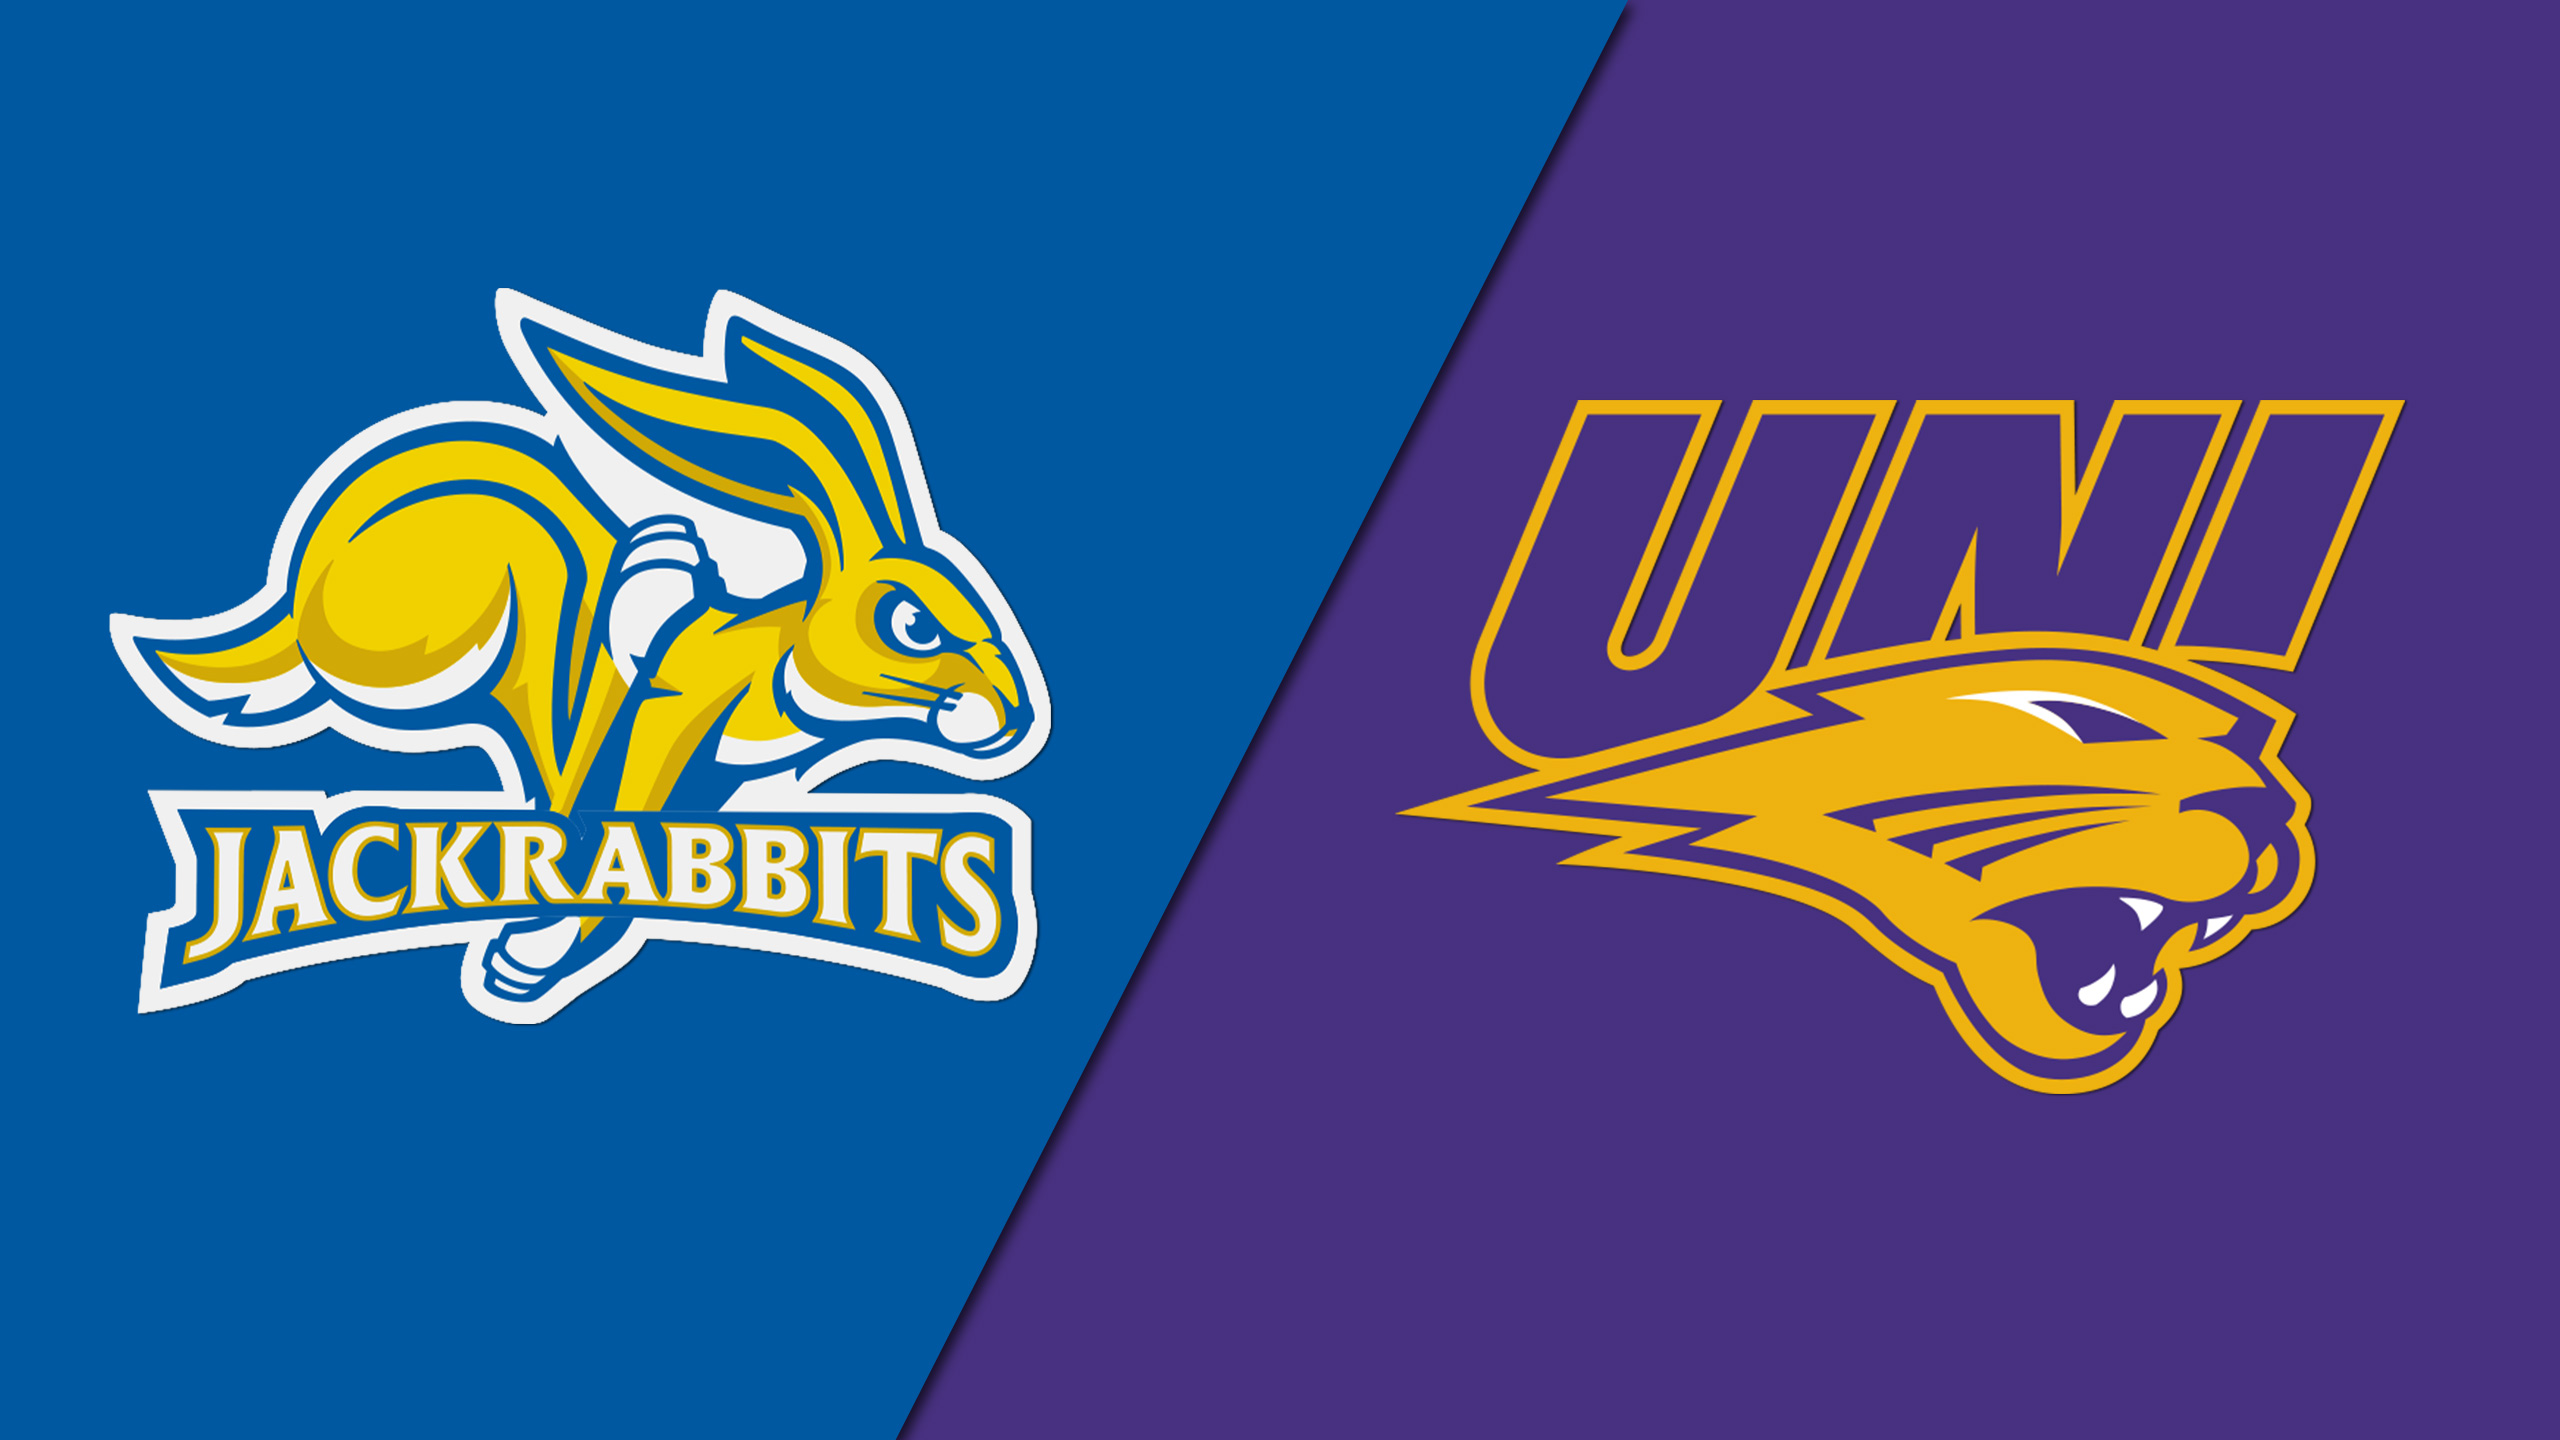 South Dakota State vs. Northern Iowa (Football)